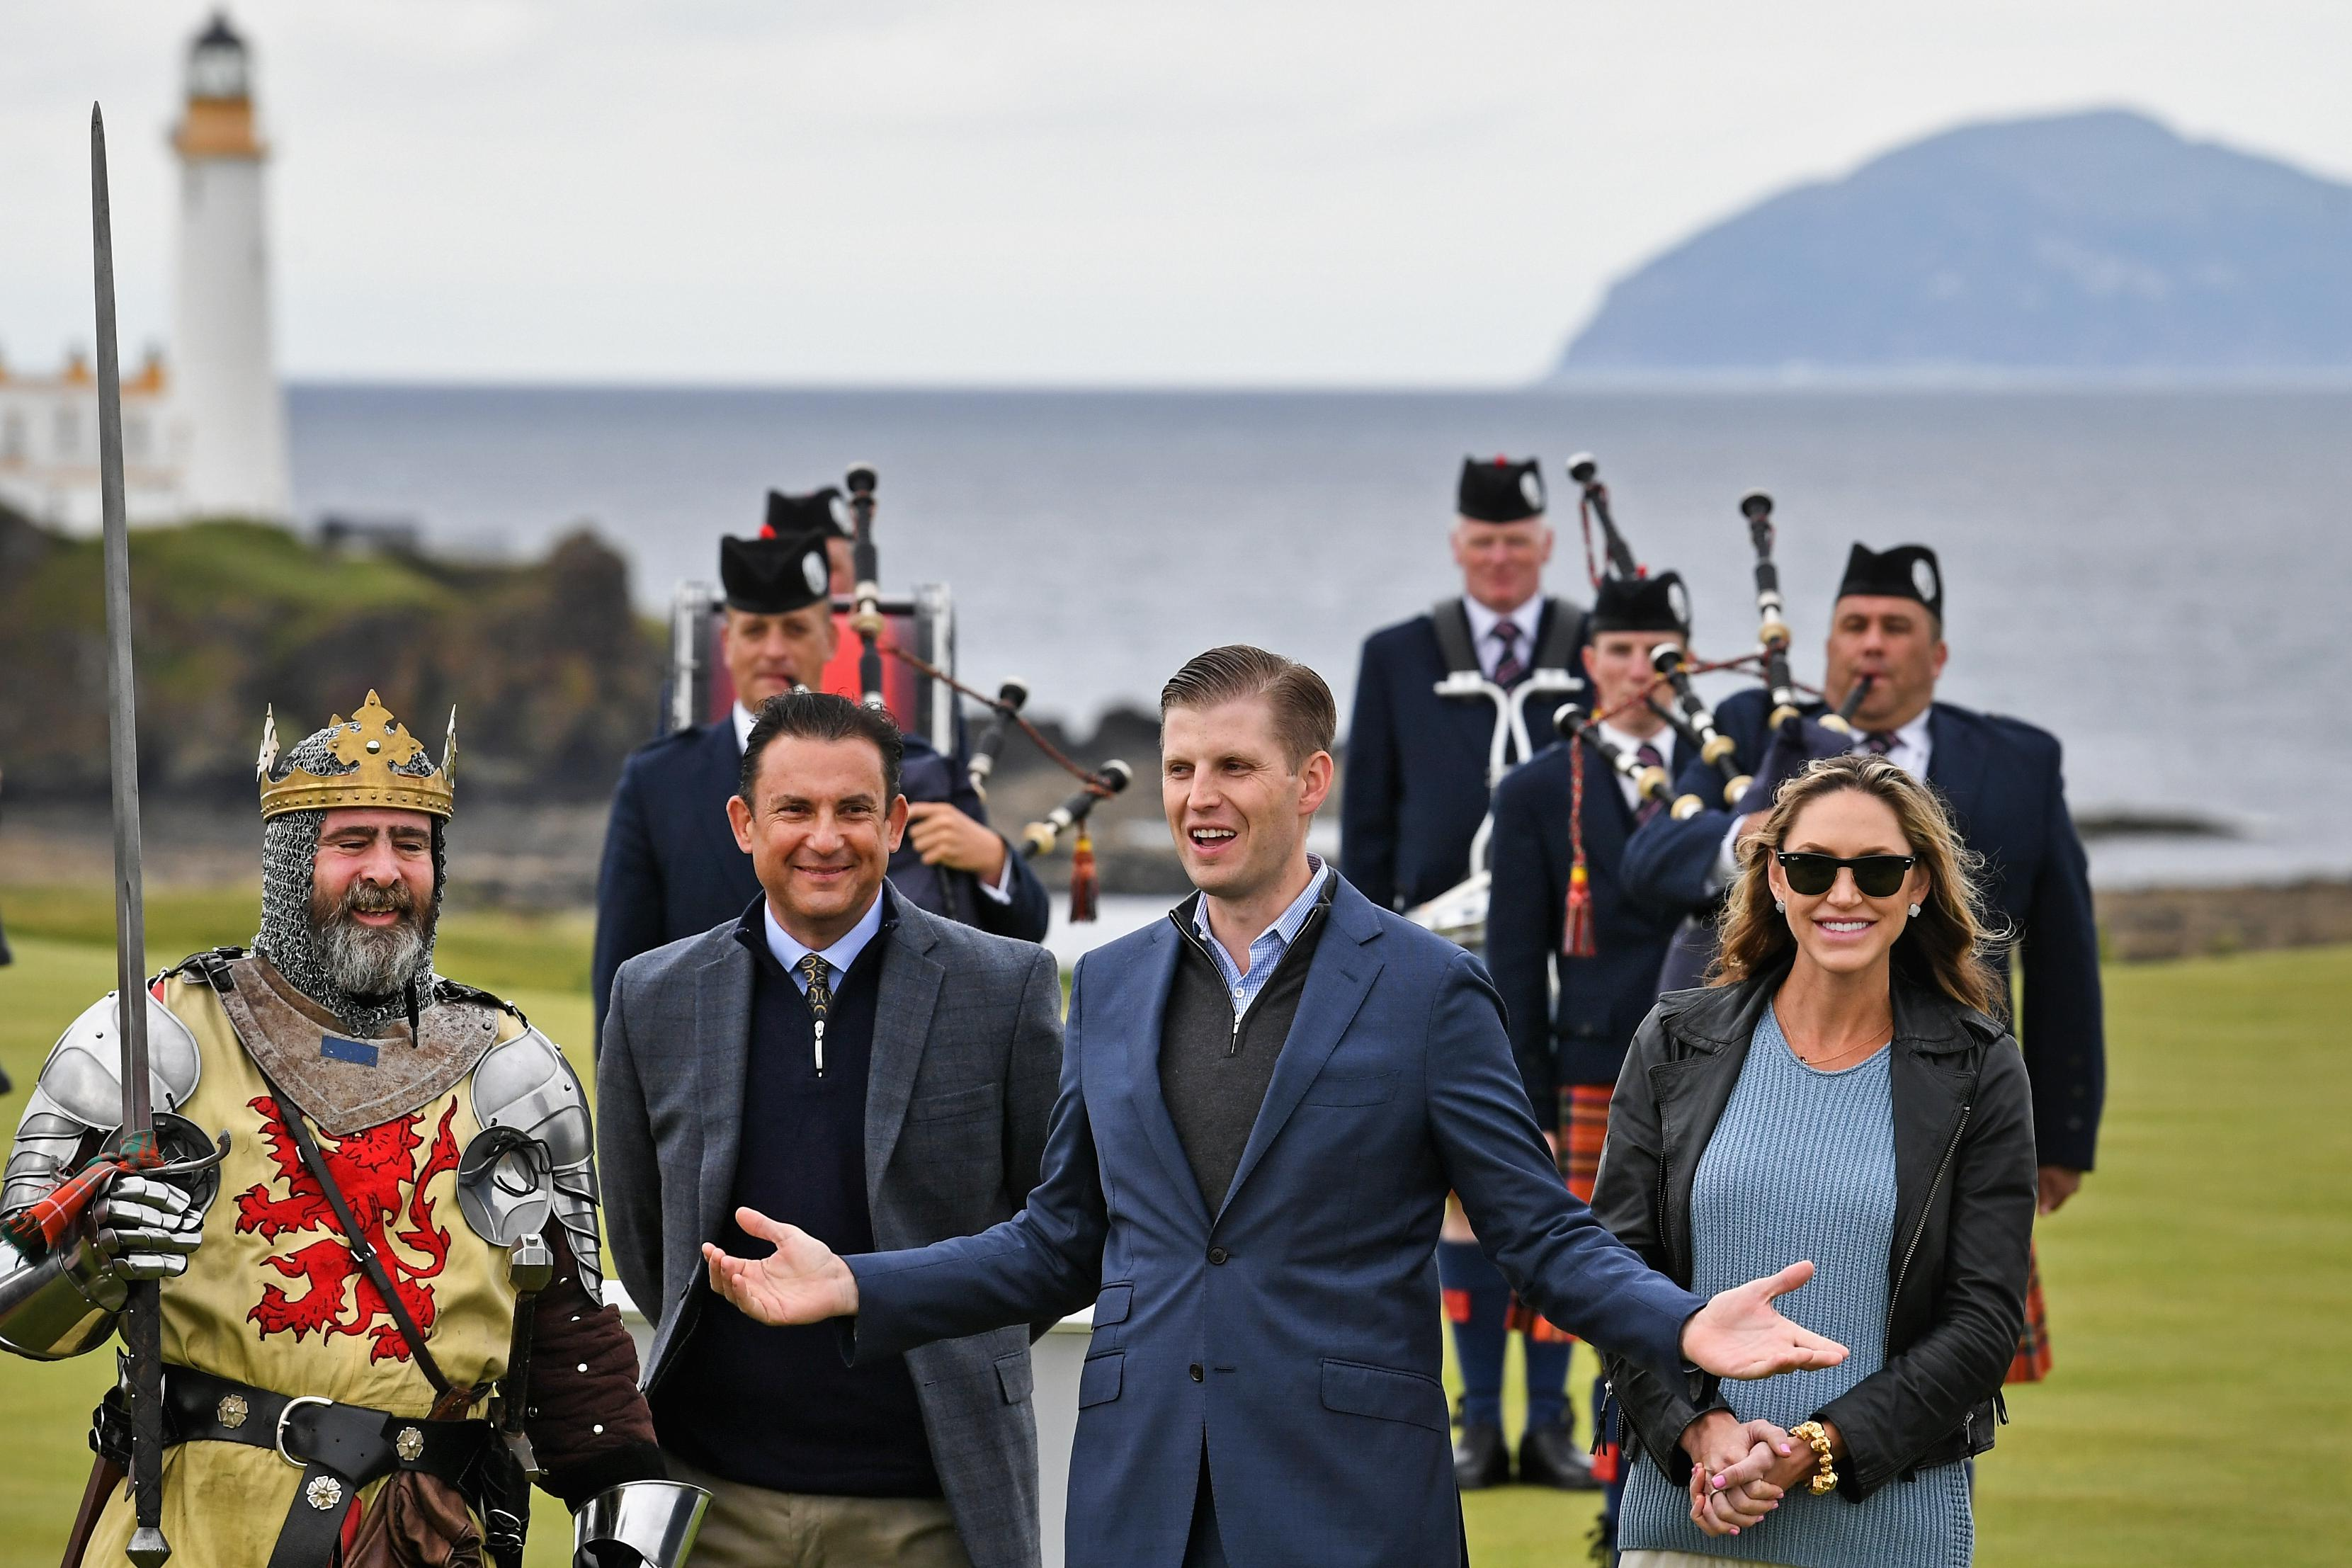 Eric Trump and his wife, Lara, at Turnberry golf course, surrounded by a man dressed as a knight and other men in kilts.